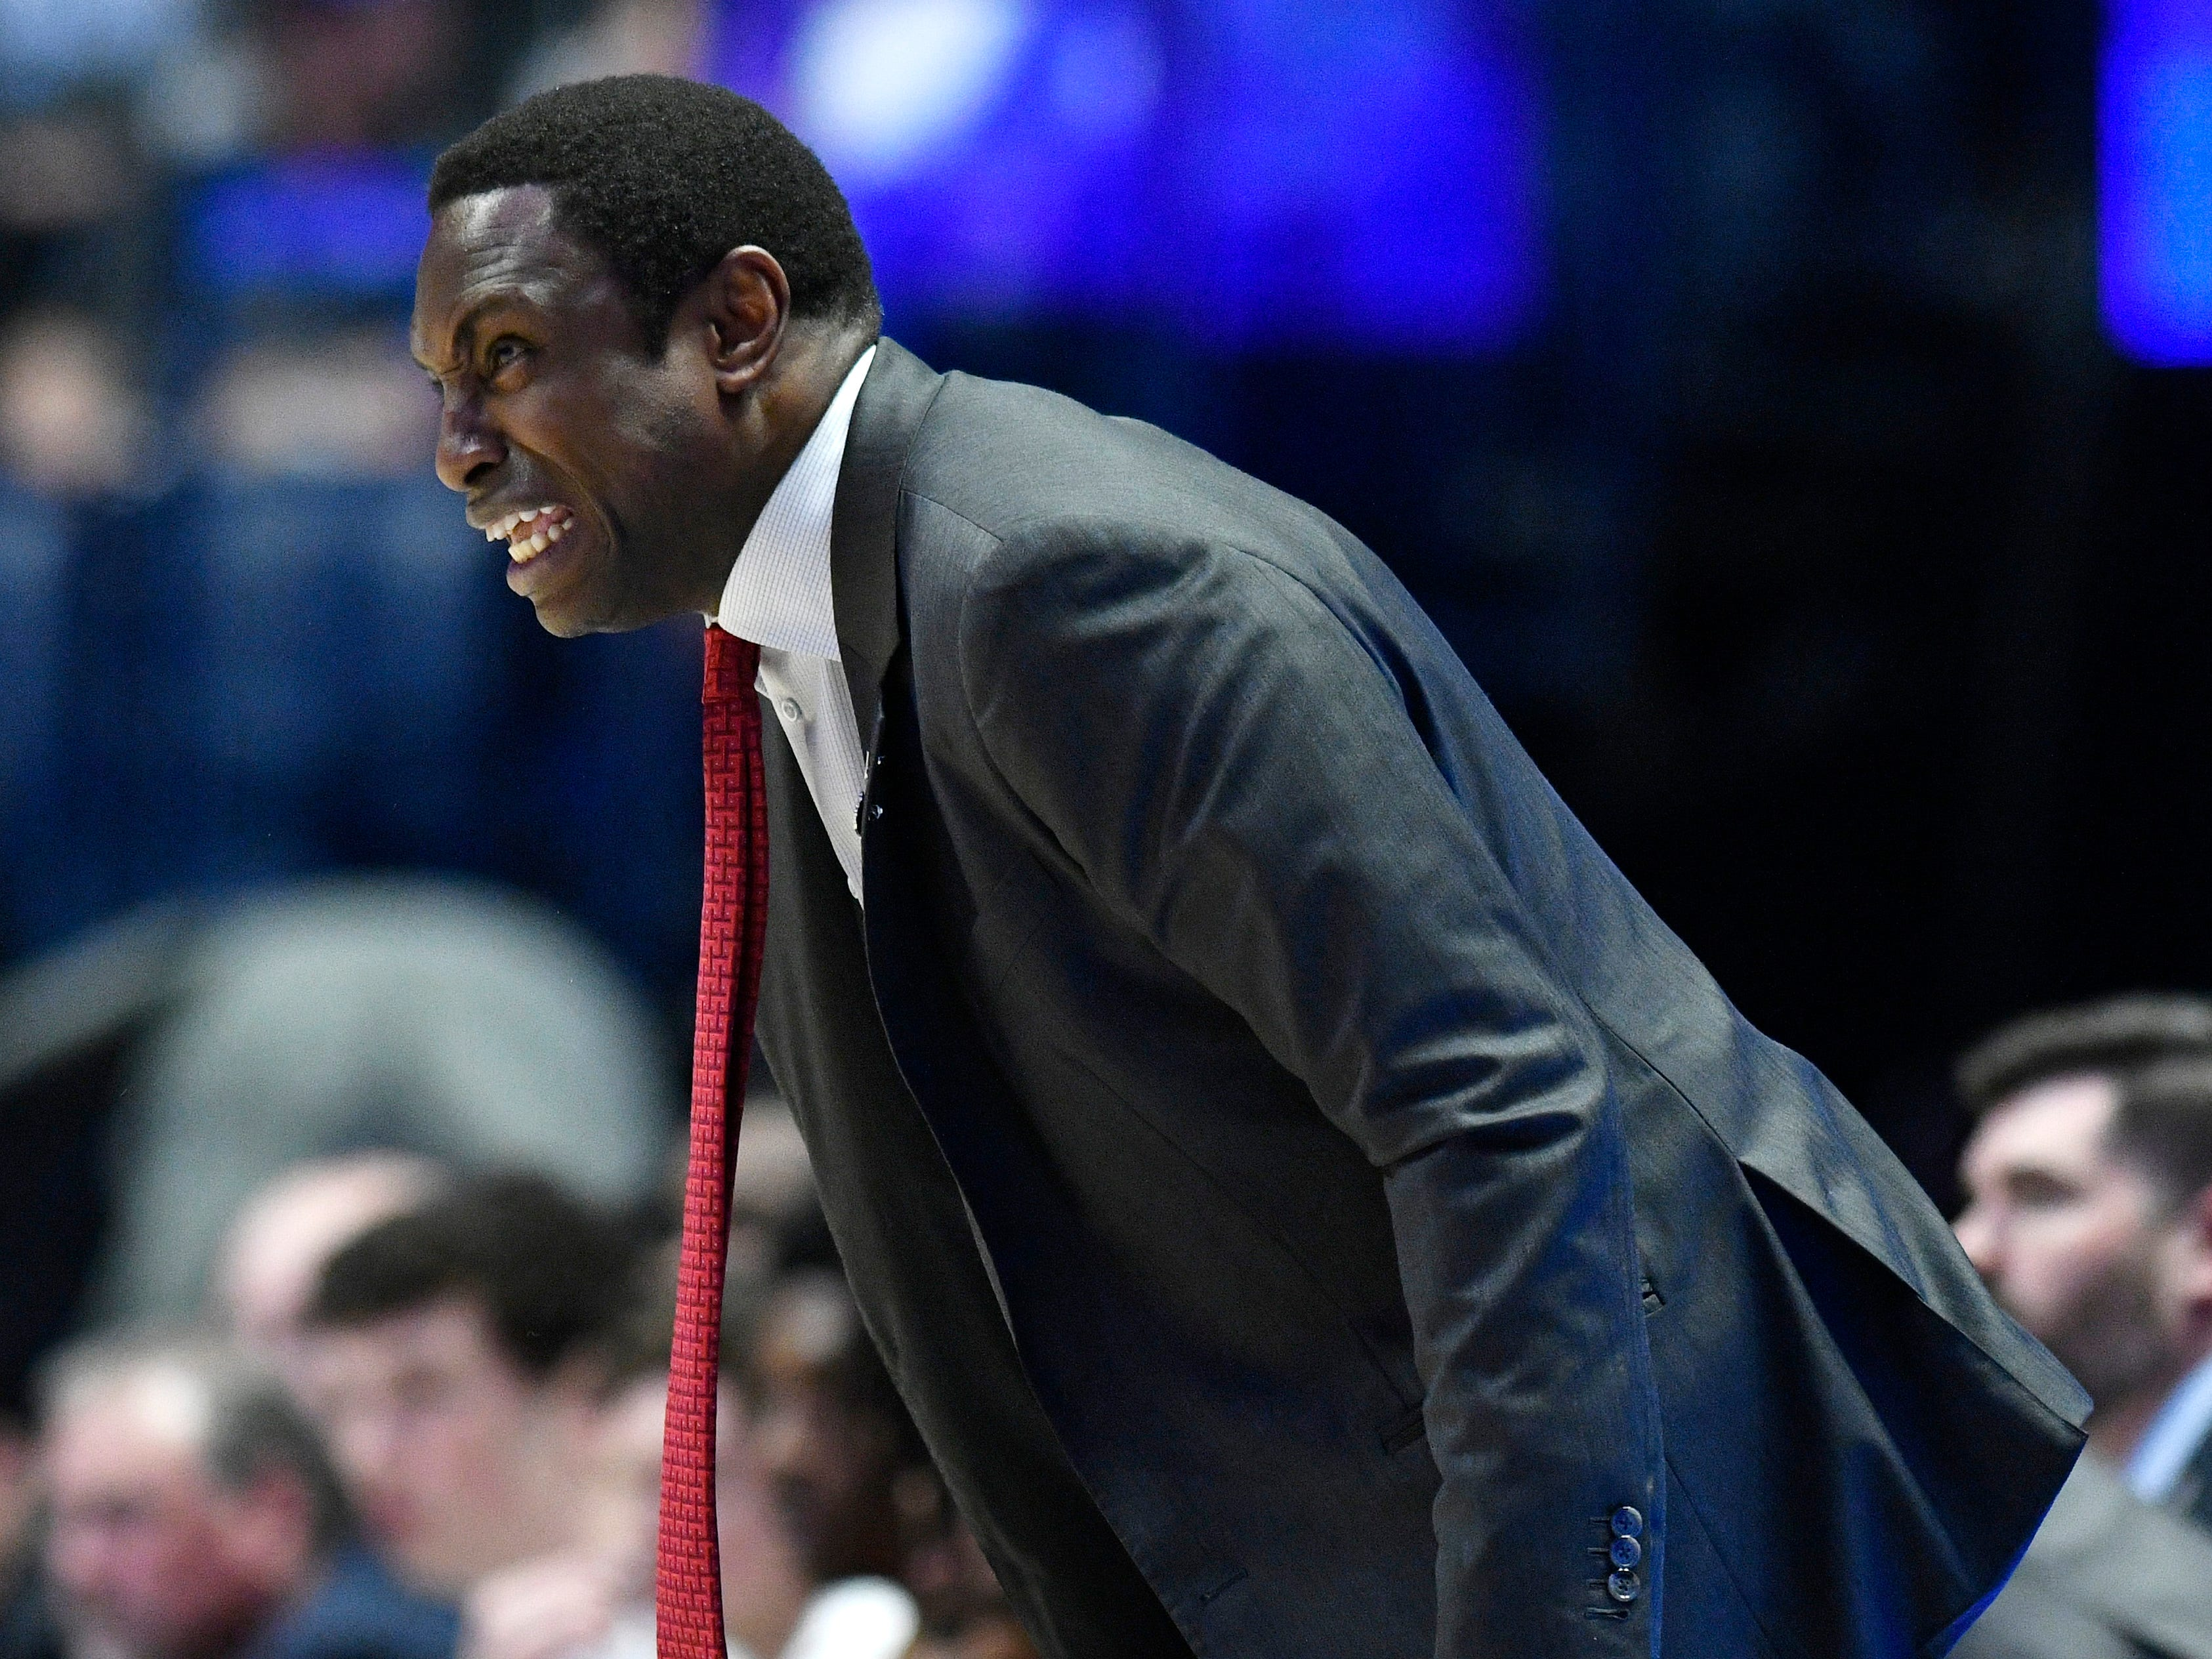 Alabama head coach Avery Johnson yells to his team during the second half of the SEC Men's Basketball Tournament game at Bridgestone Arena in Nashville, Tenn., Thursday, March 14, 2019.